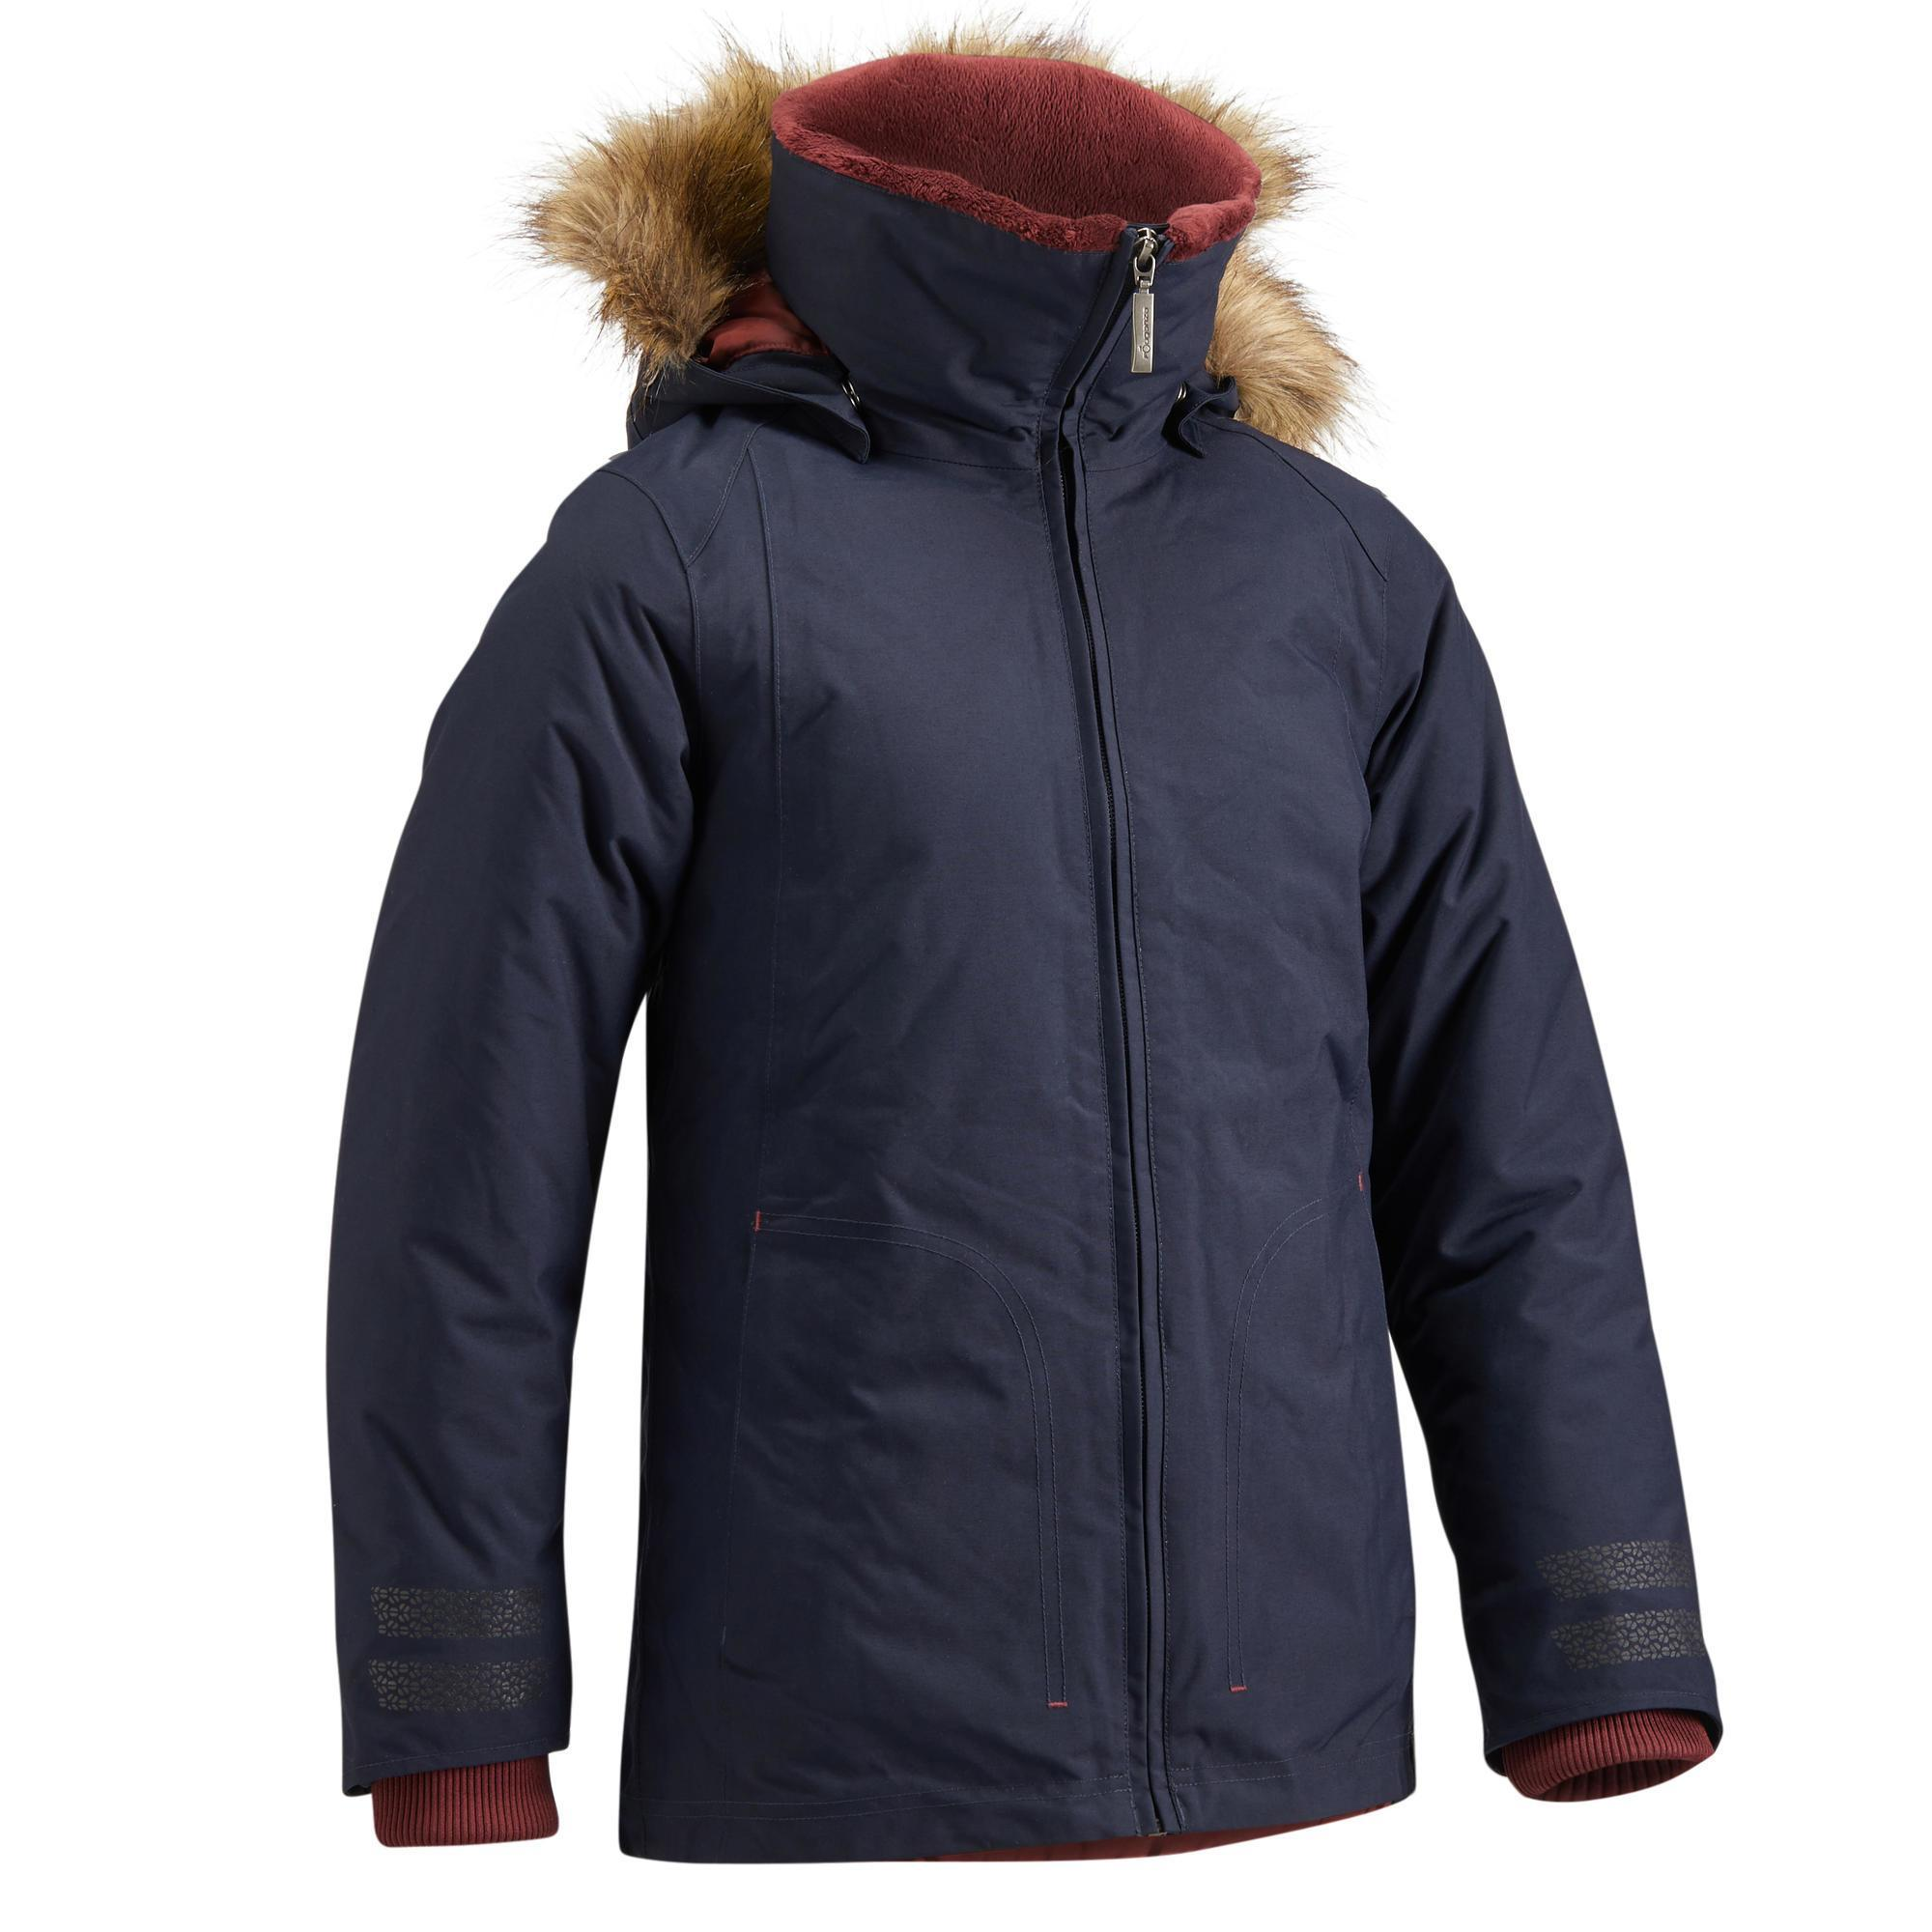 Jungen,Kinder Winter-Reitparka 500 Warm wasserdicht Kinder marineblau/bordeaux | 03583788091141